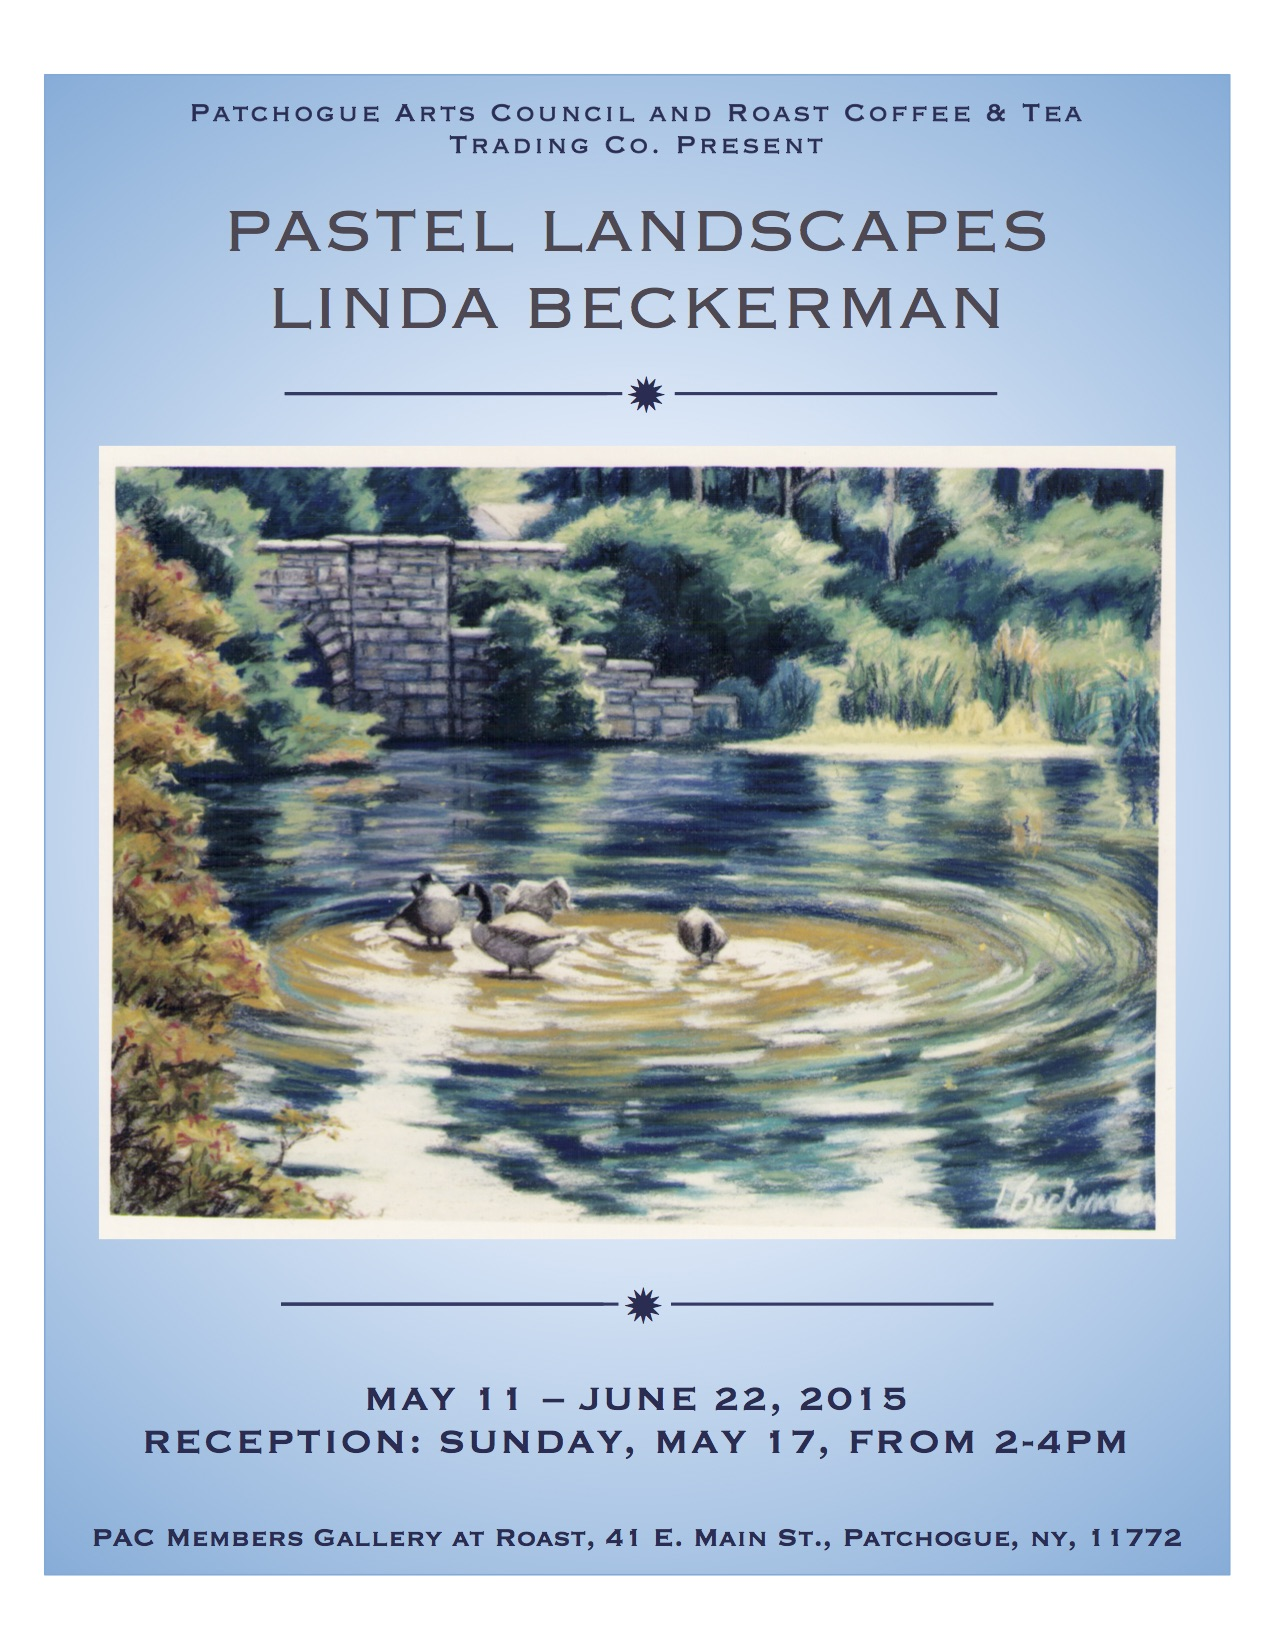 Linda Beckerman - Pastel Landscapes